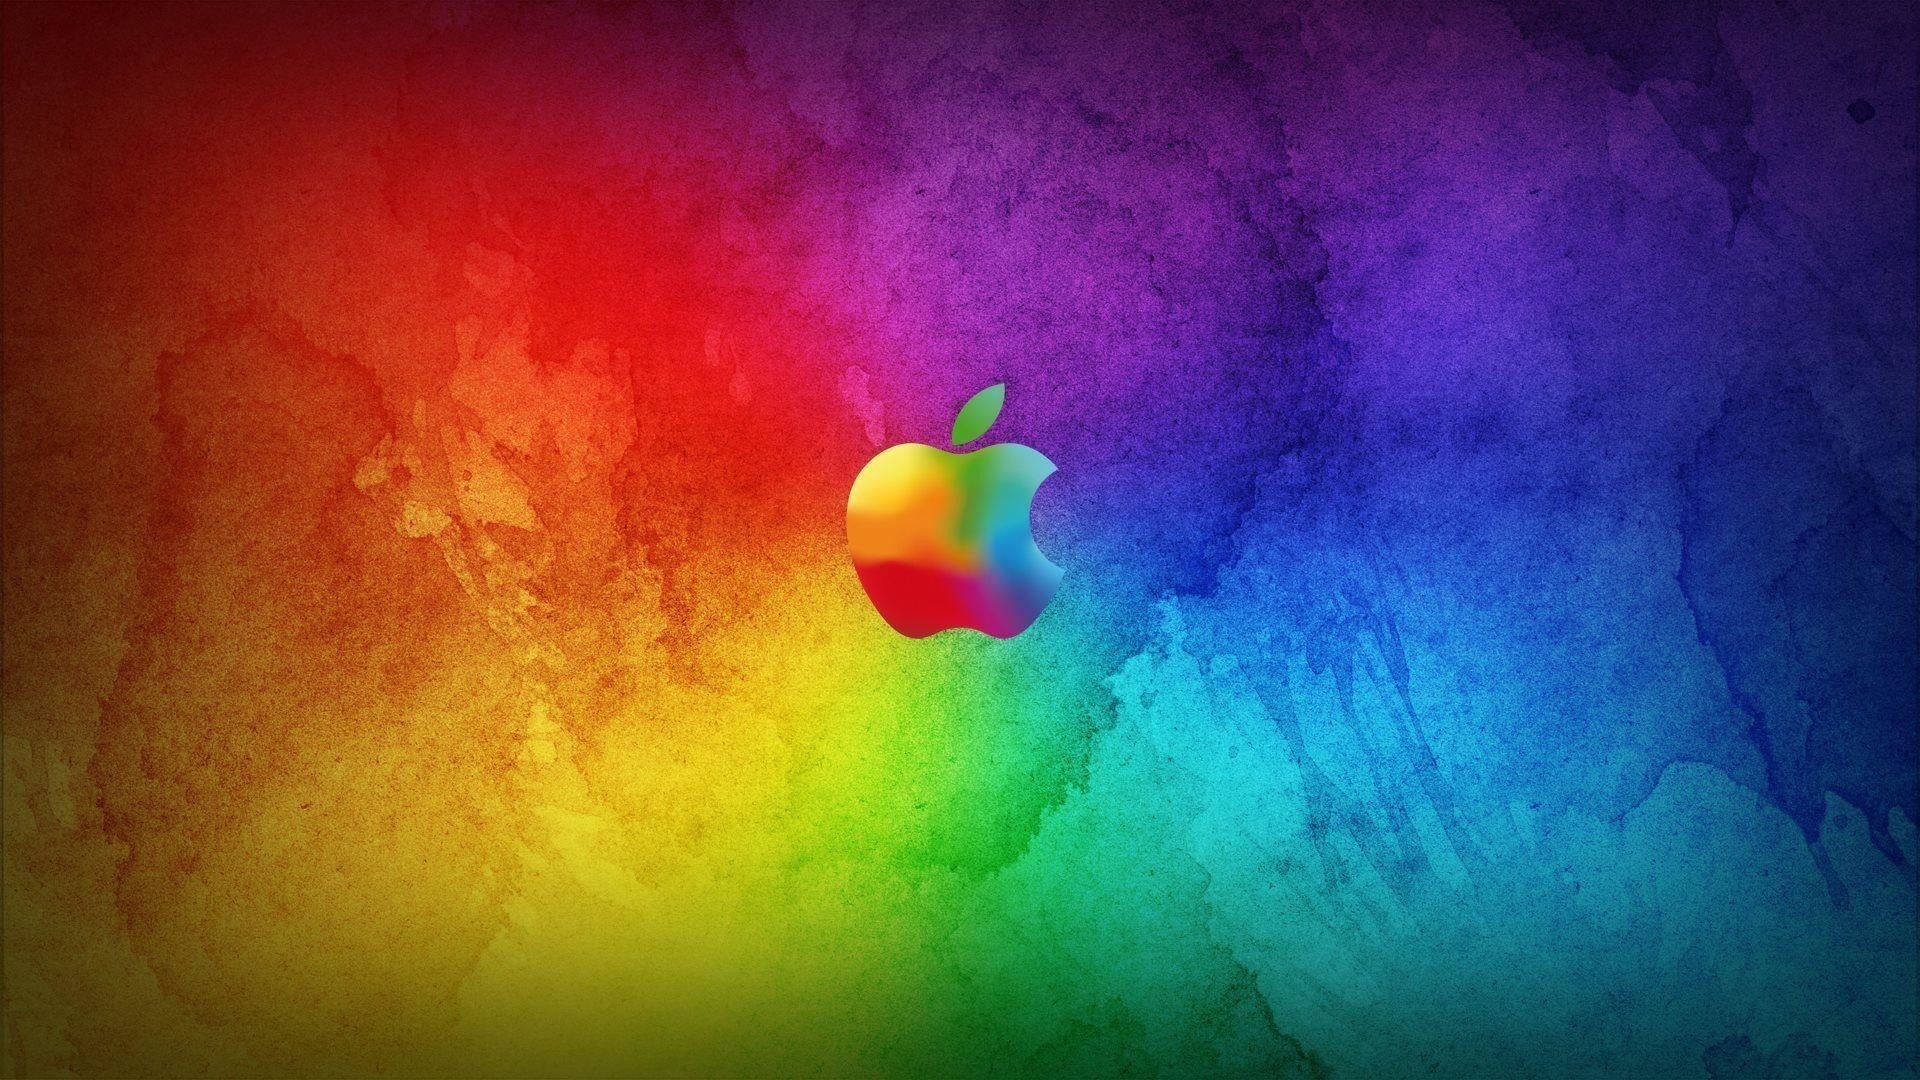 cool apple logos hd. 1920x1080 amazing colorful apple logo wallpaper full hd wallpapers cool logos